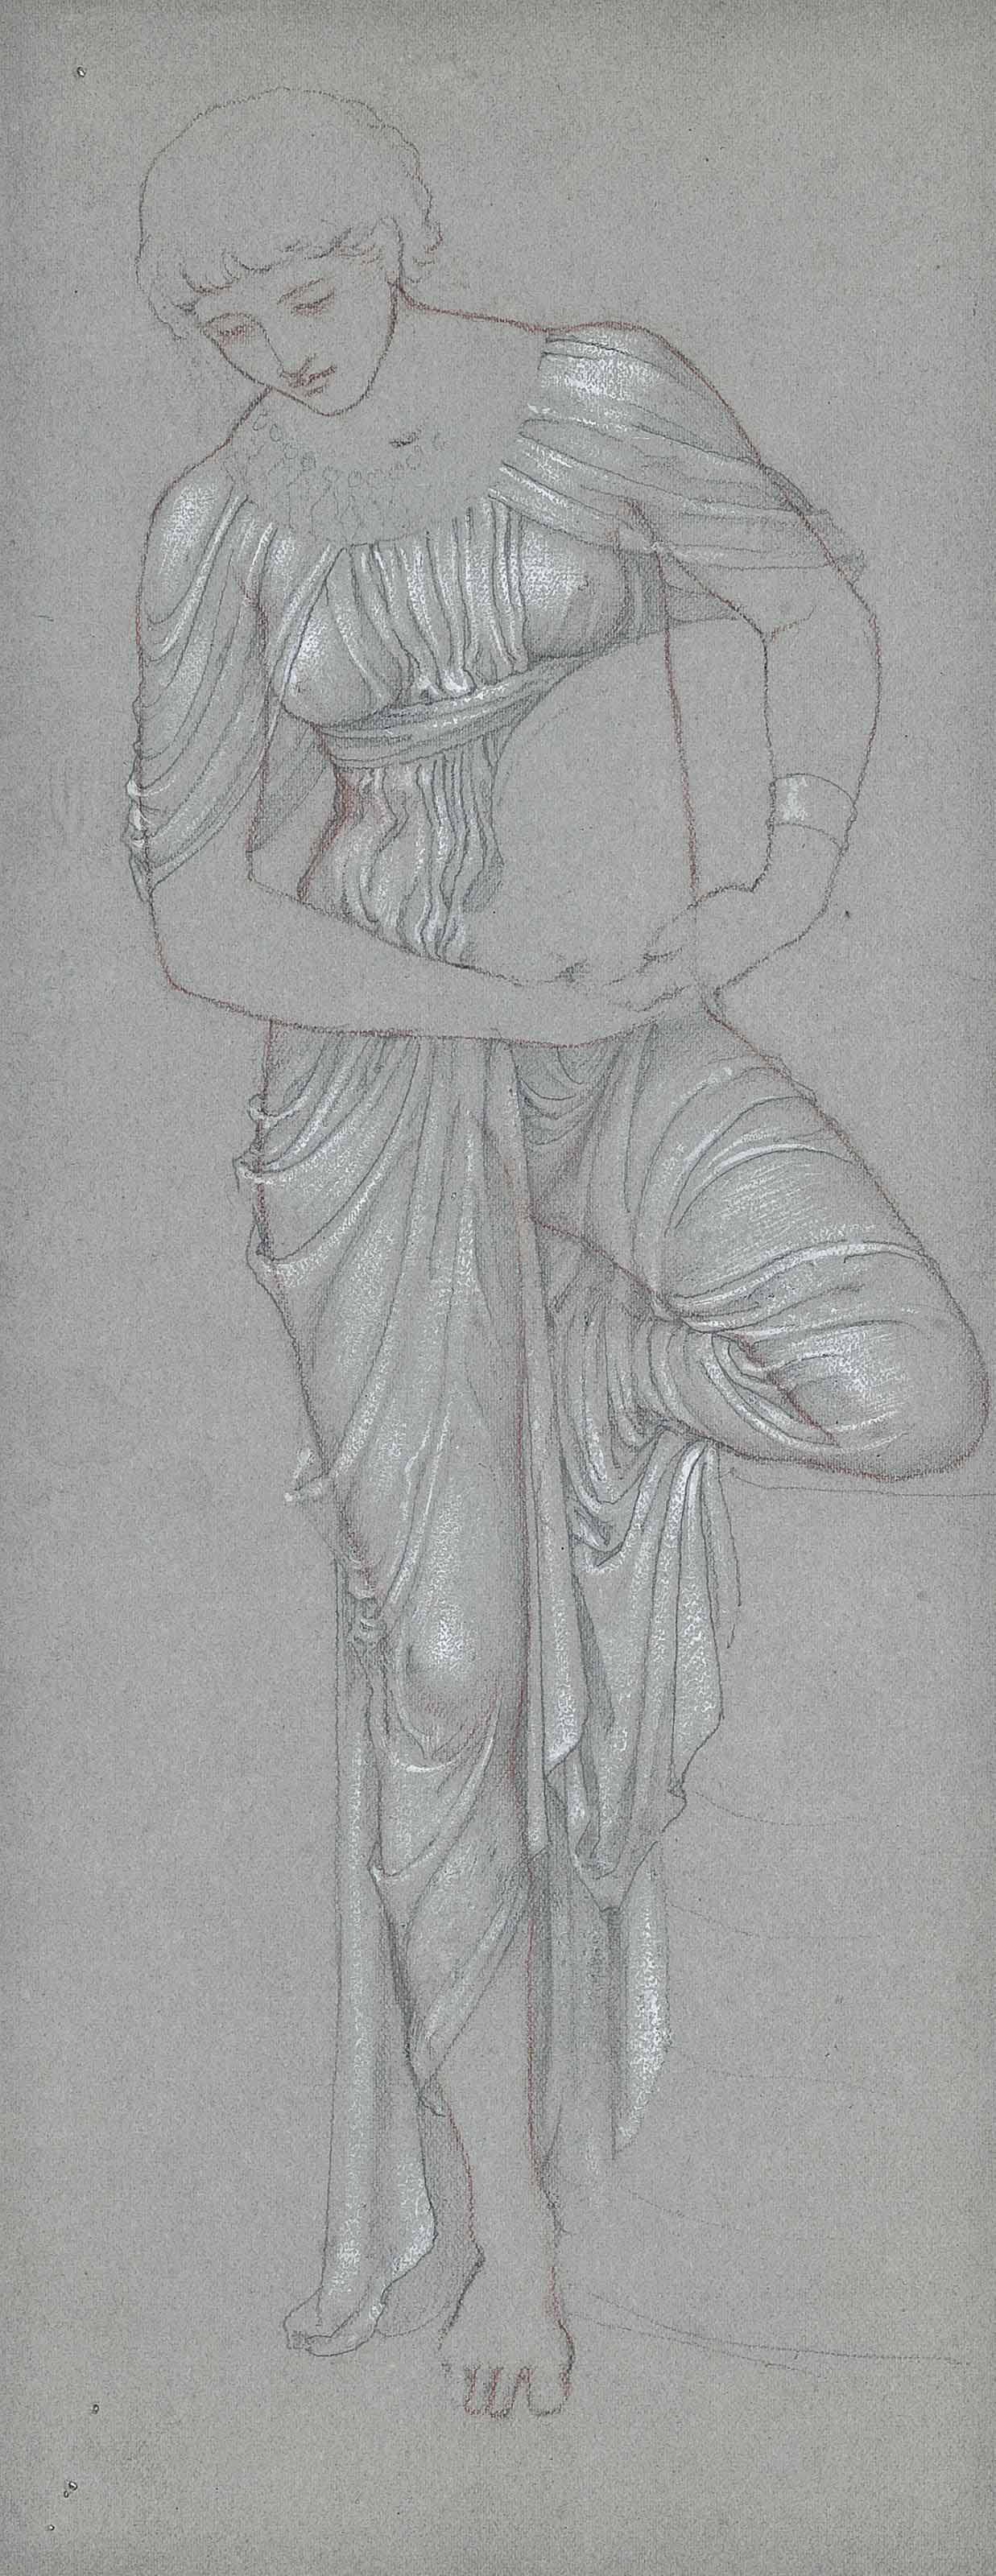 Drapery study: A young woman standing with one bent knee